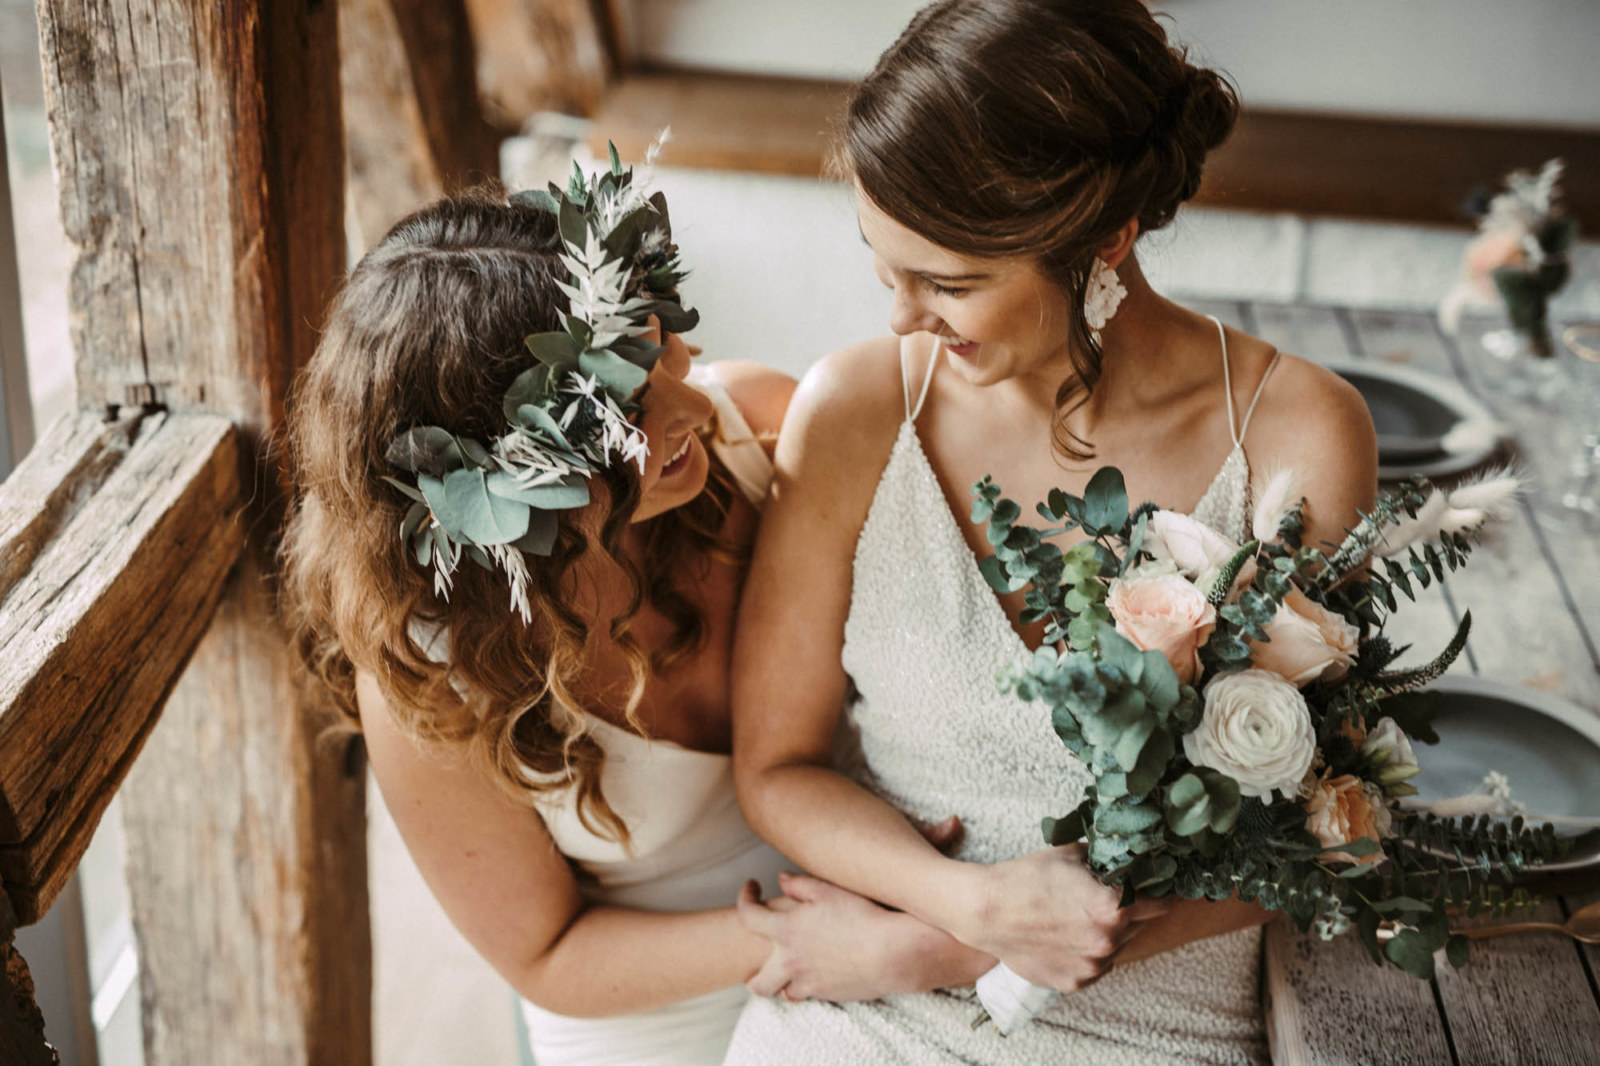 Same-Sex Wedding inspiration in Germany - Lesbian Wedding - Dancing With Her